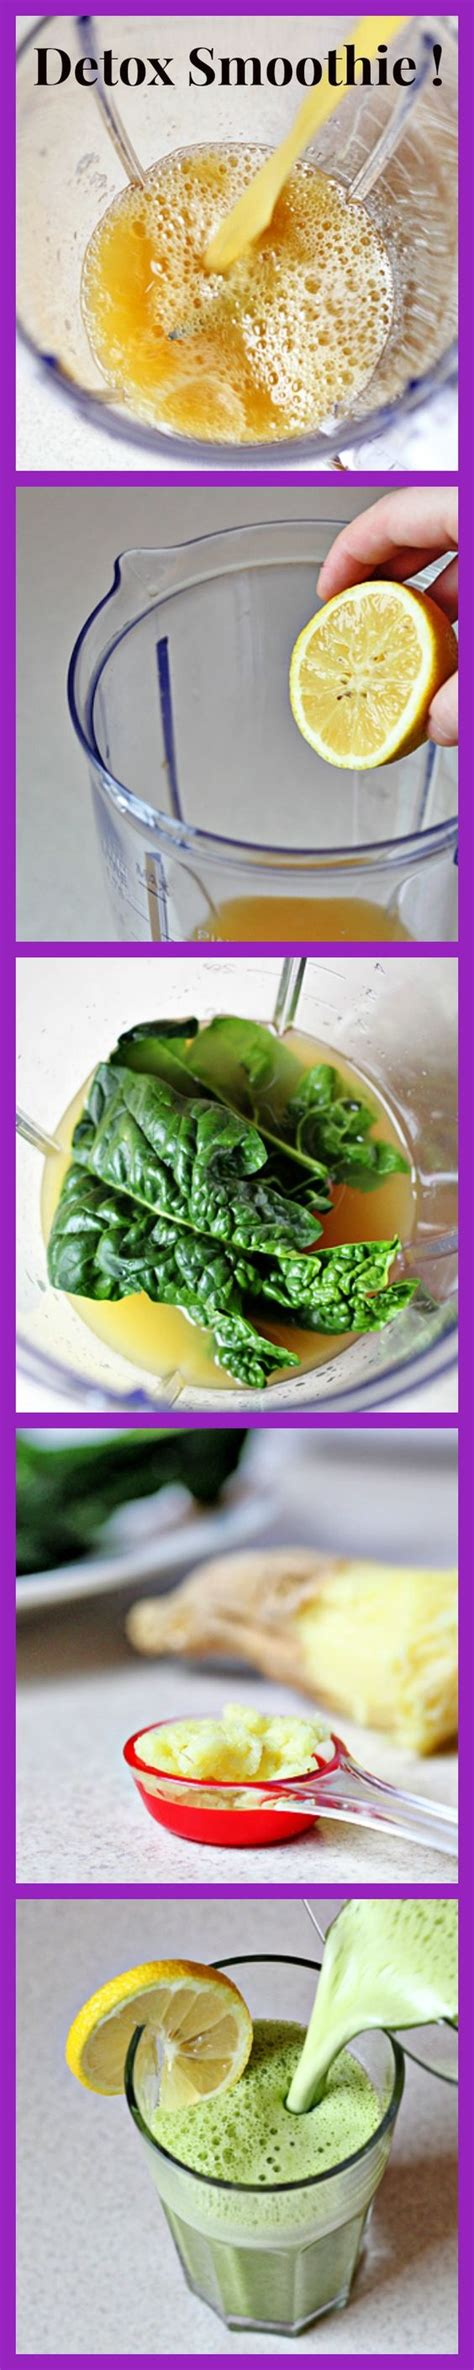 Spinach For Detox by Detox Smoothie Pineapple Lemon Spinach Leaves Grated